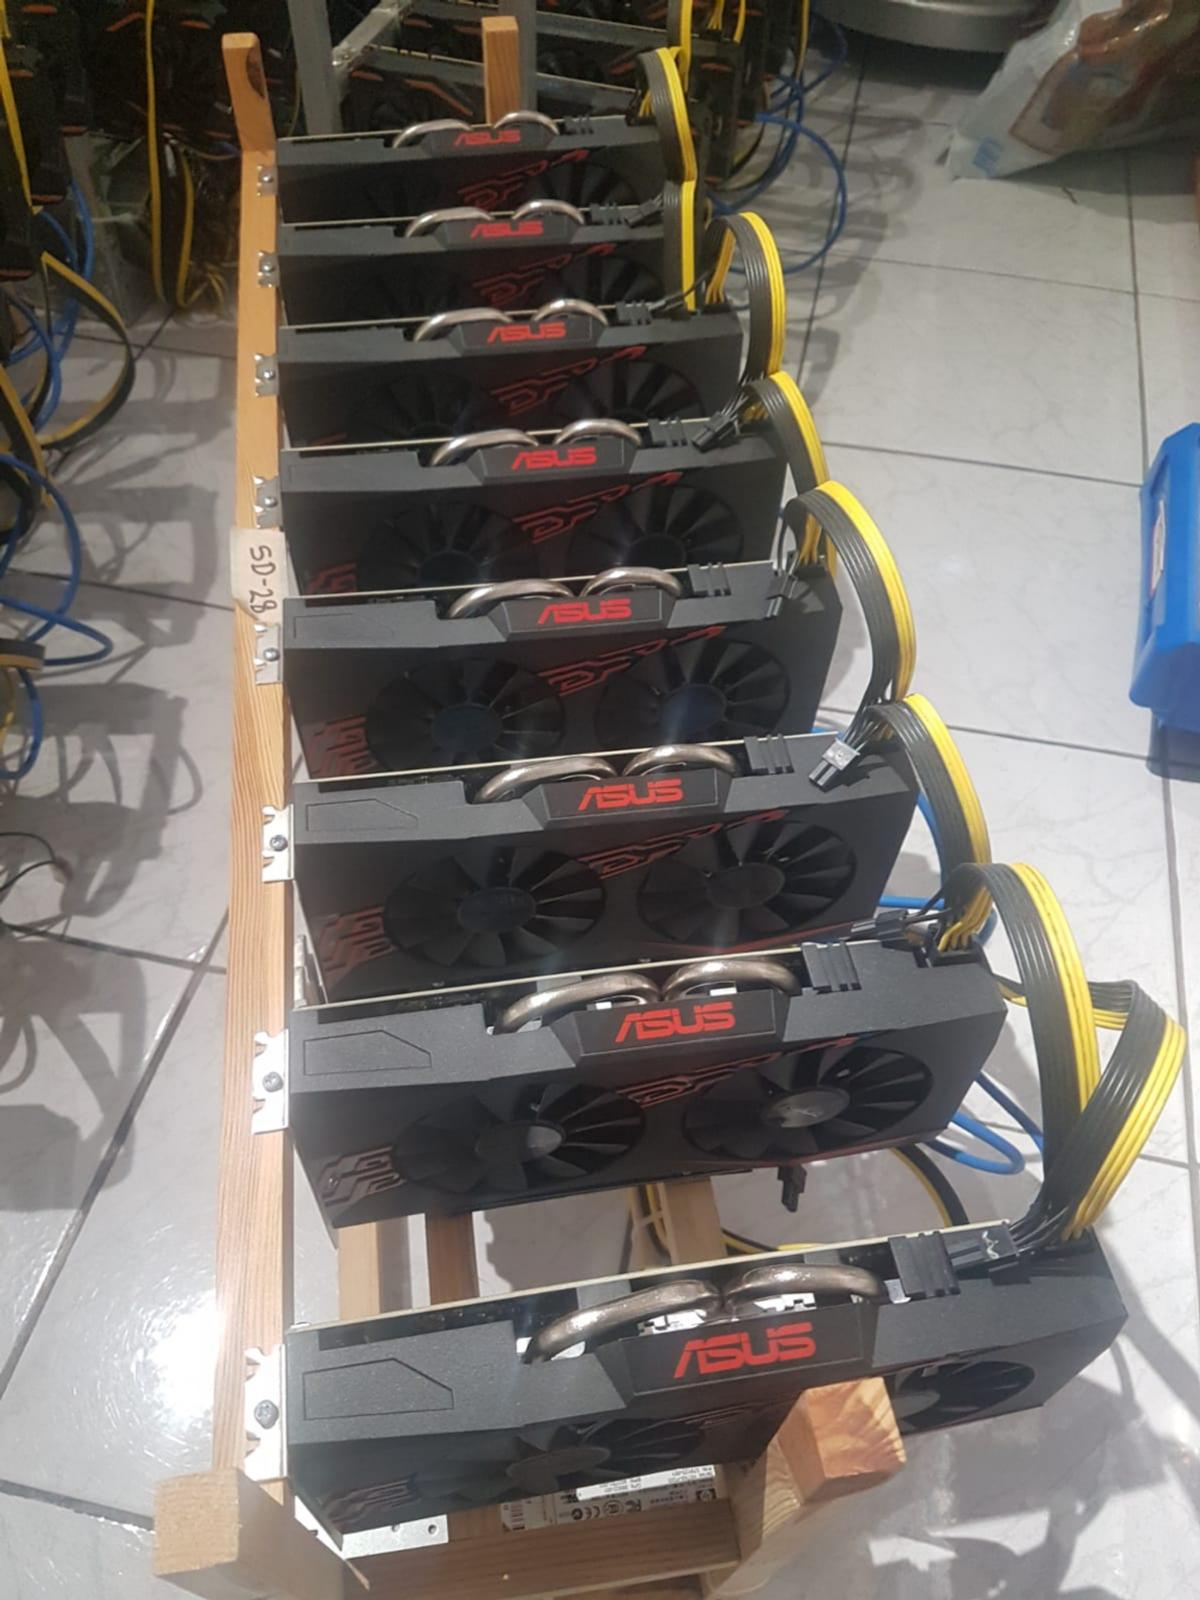 P106 Mining Card For Sale